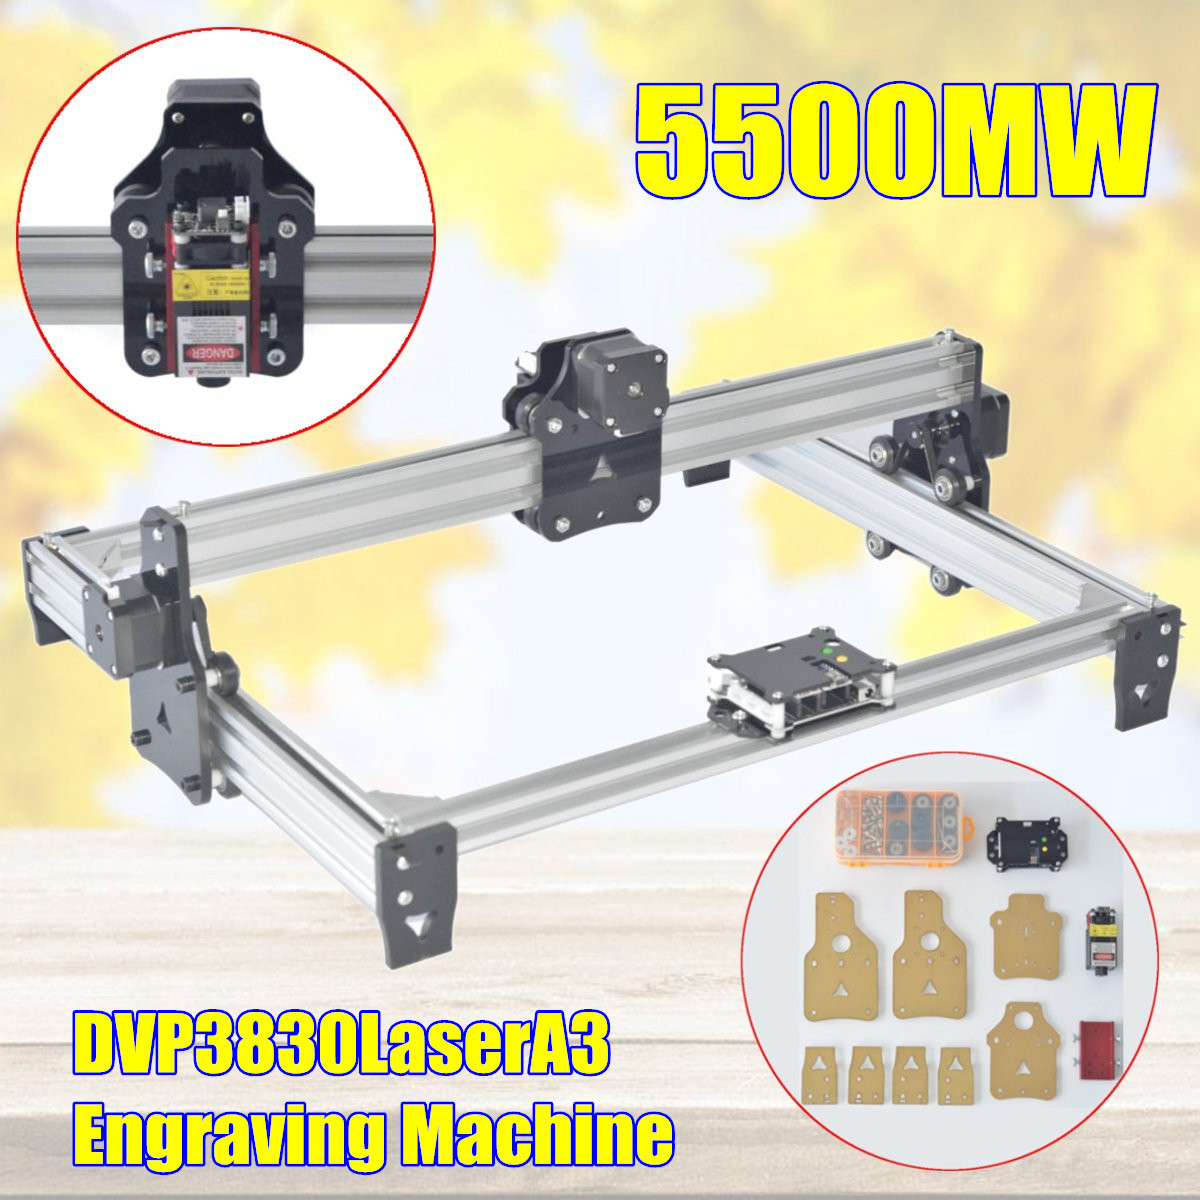 5500mw DVP 3830 Laser A3 Engraving Machine,DIY Laser Engraver Machine,Wood Router,laser cutter,cnc router,Woodworking Machinery набор для барбекю gipfel ignis 3 предмета